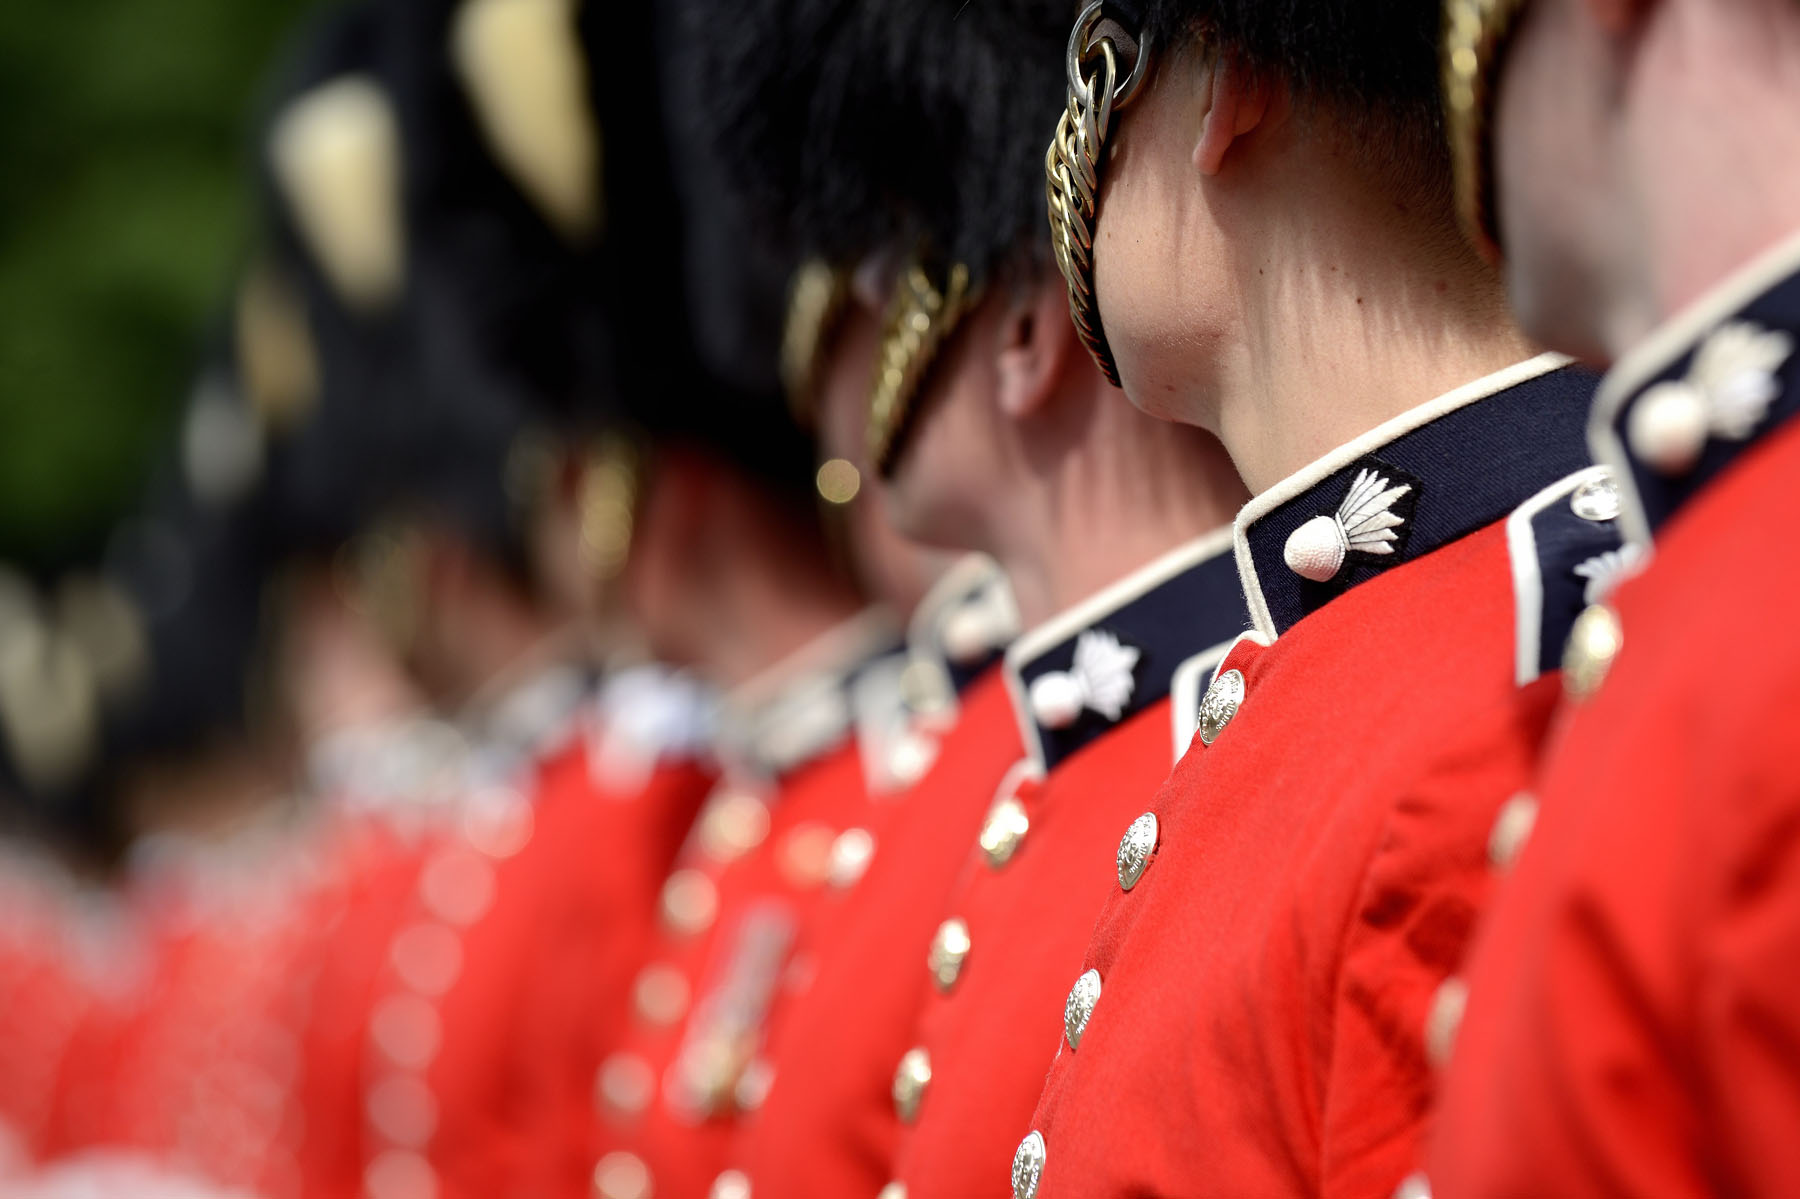 From June 28 to August 22, come see the Relief of the Sentries on the grounds of Rideau Hall. In this much-loved ceremony, sentries are led by a piper to their posts at Sussex Gate and in front of the residence, every hour, on the hour, from 9 a.m. to 5 p.m.